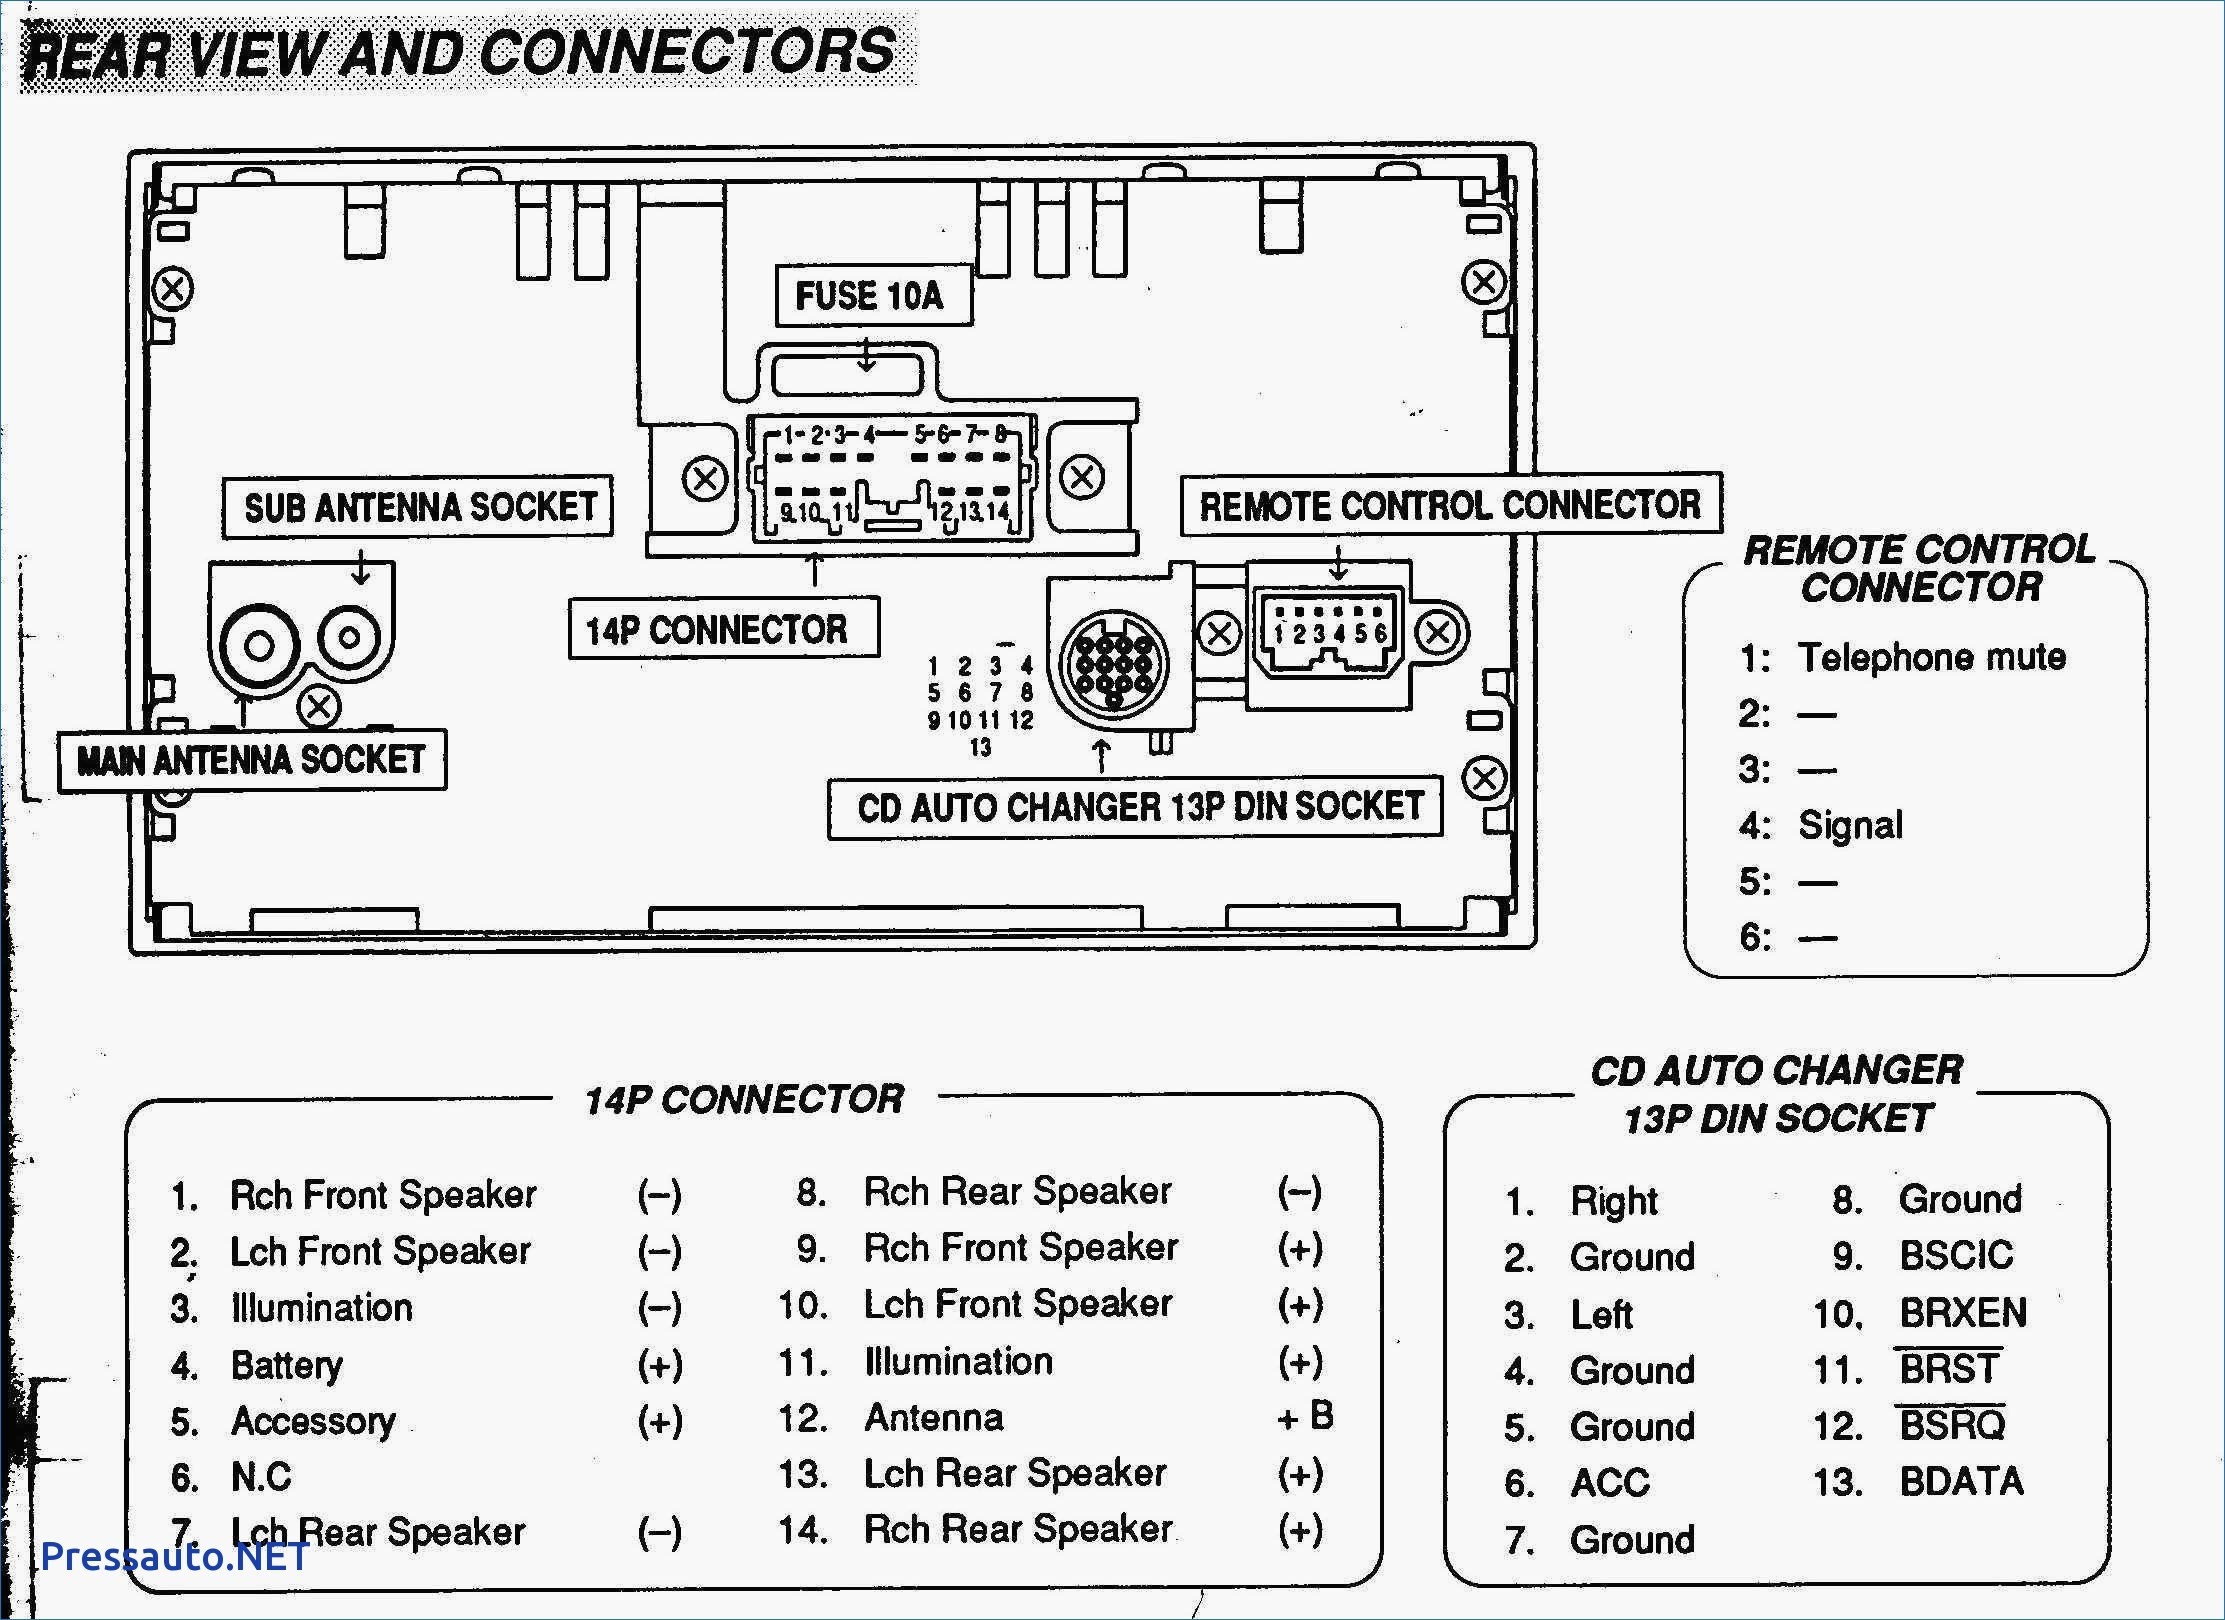 Boss Radio Wiring - Fusebox and Wiring Diagram circuit-lay -  circuit-lay.sirtarghe.itdiagram database - sirtarghe.it